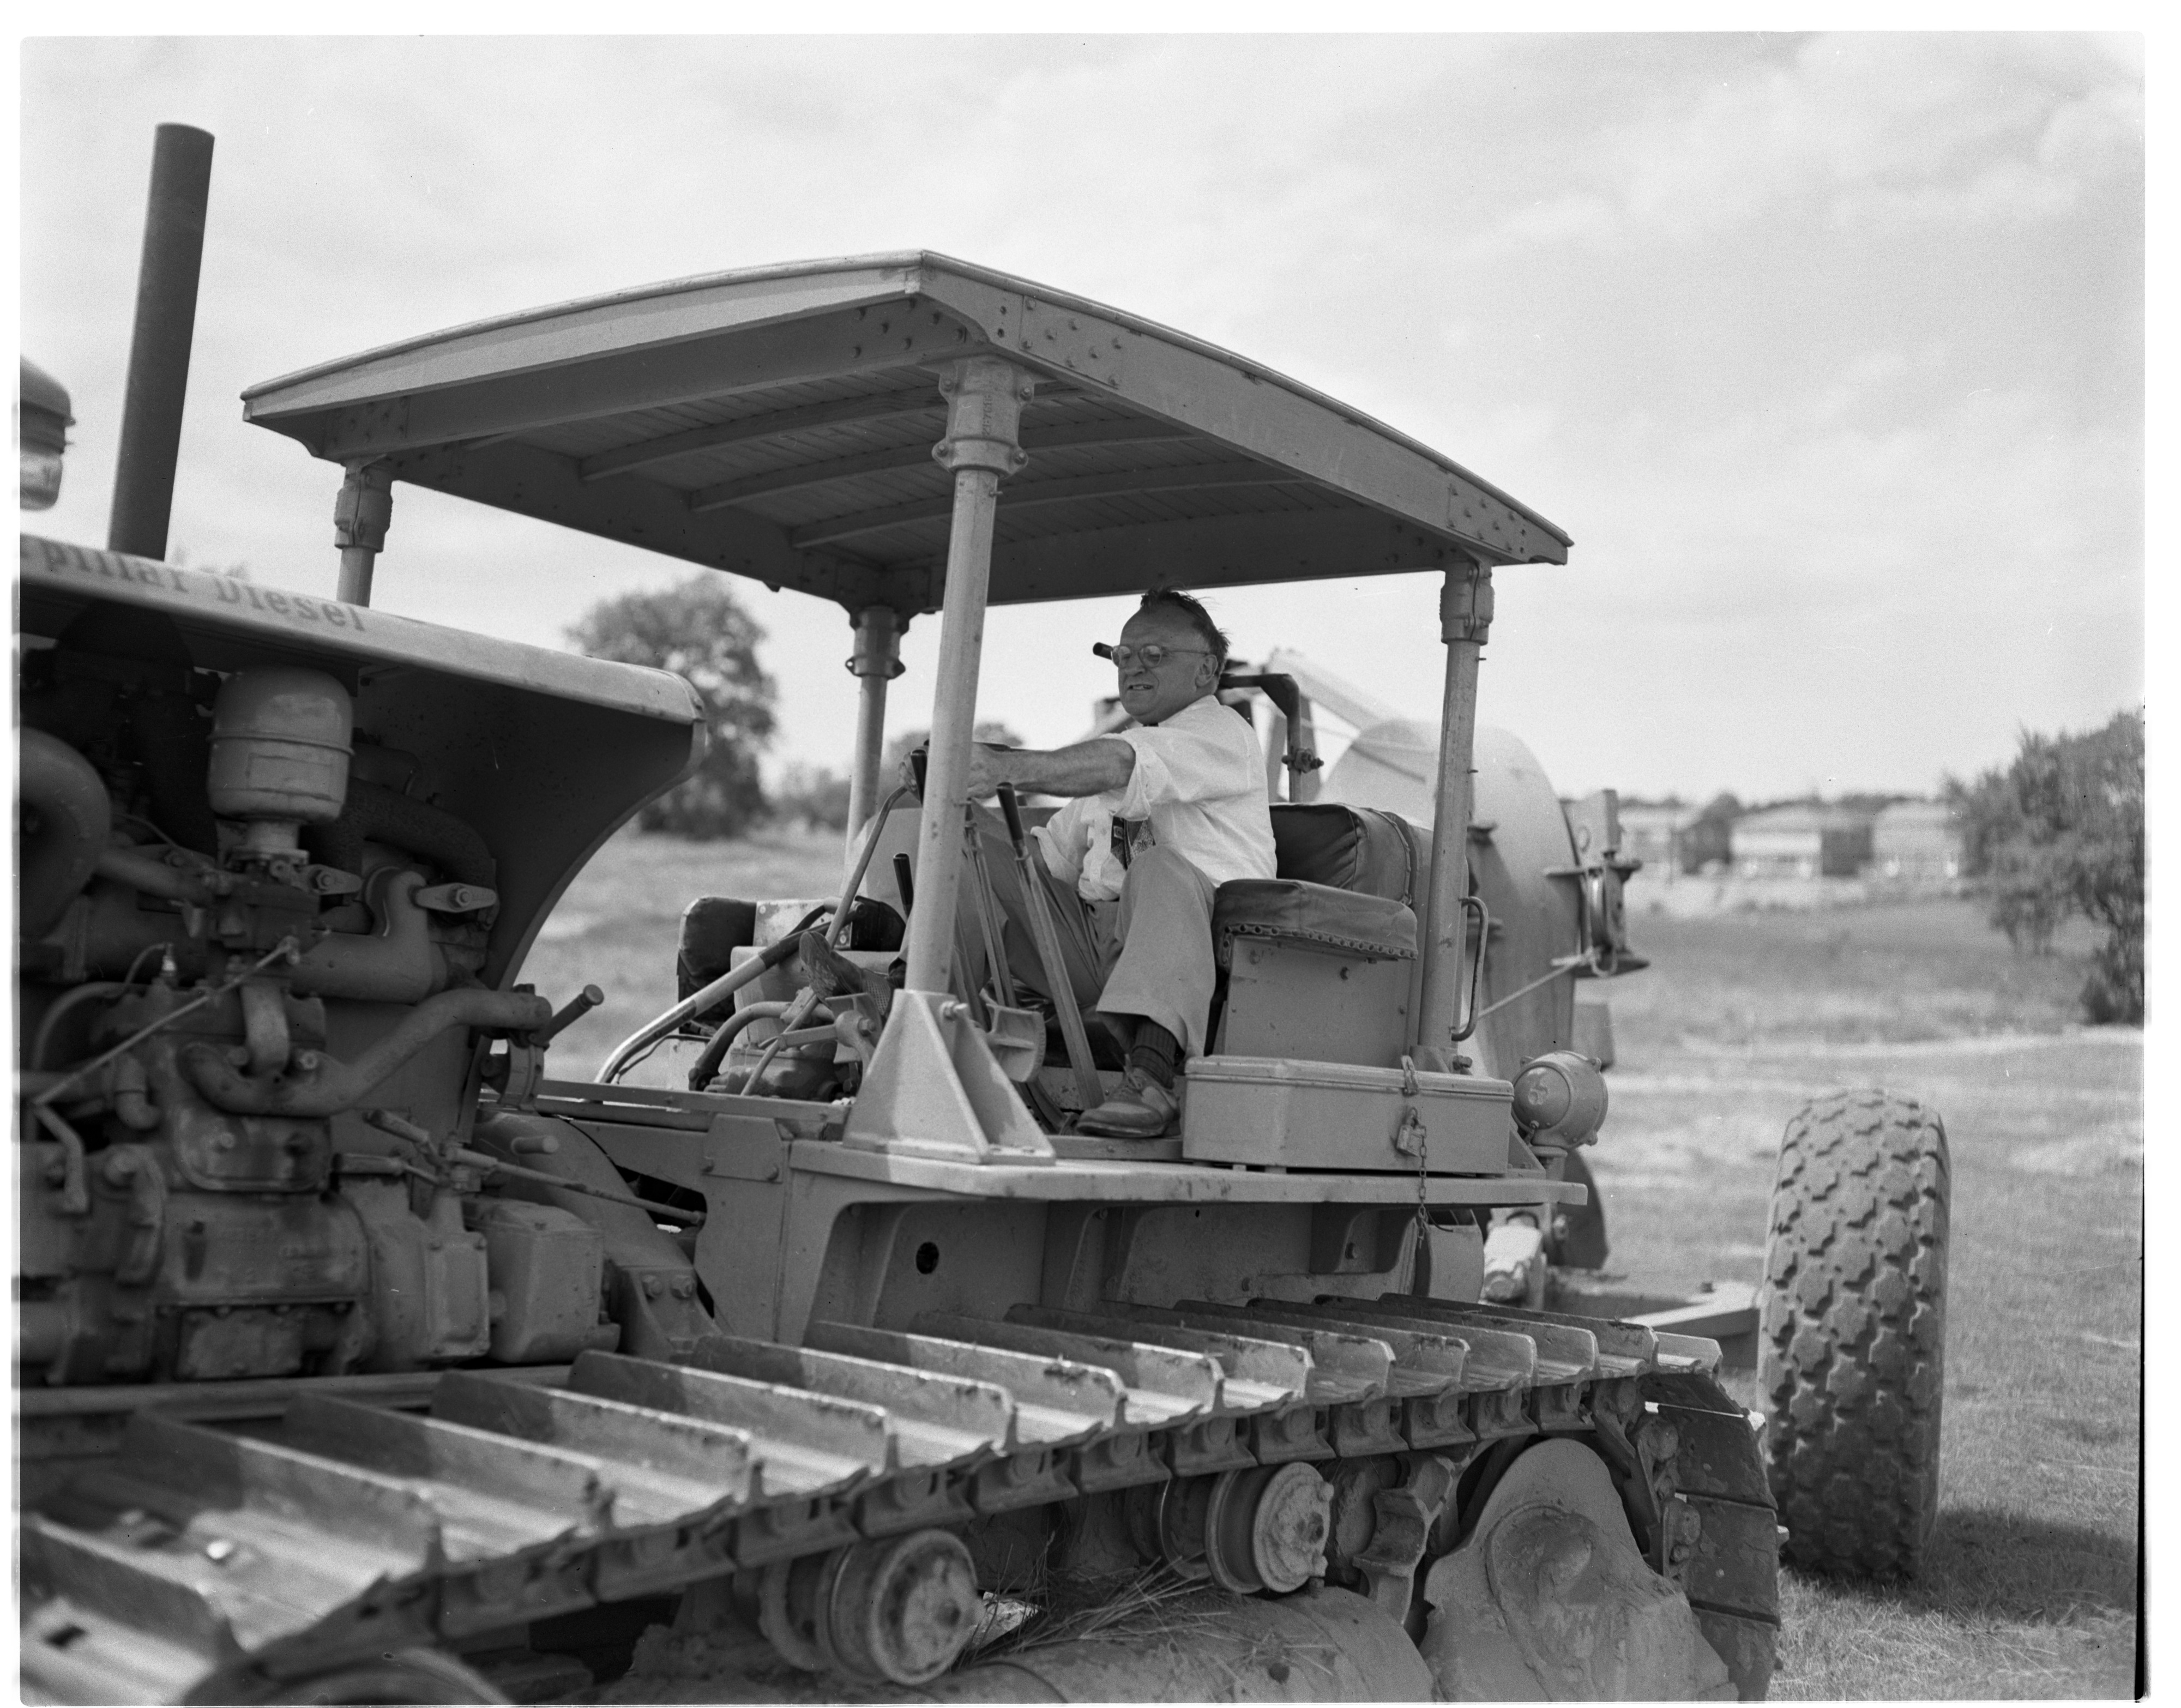 Trustee Ashley H. Clague Mans Steam Shovel at Groundbreaking Ceremony For New Ann Arbor High School, June 1953 image